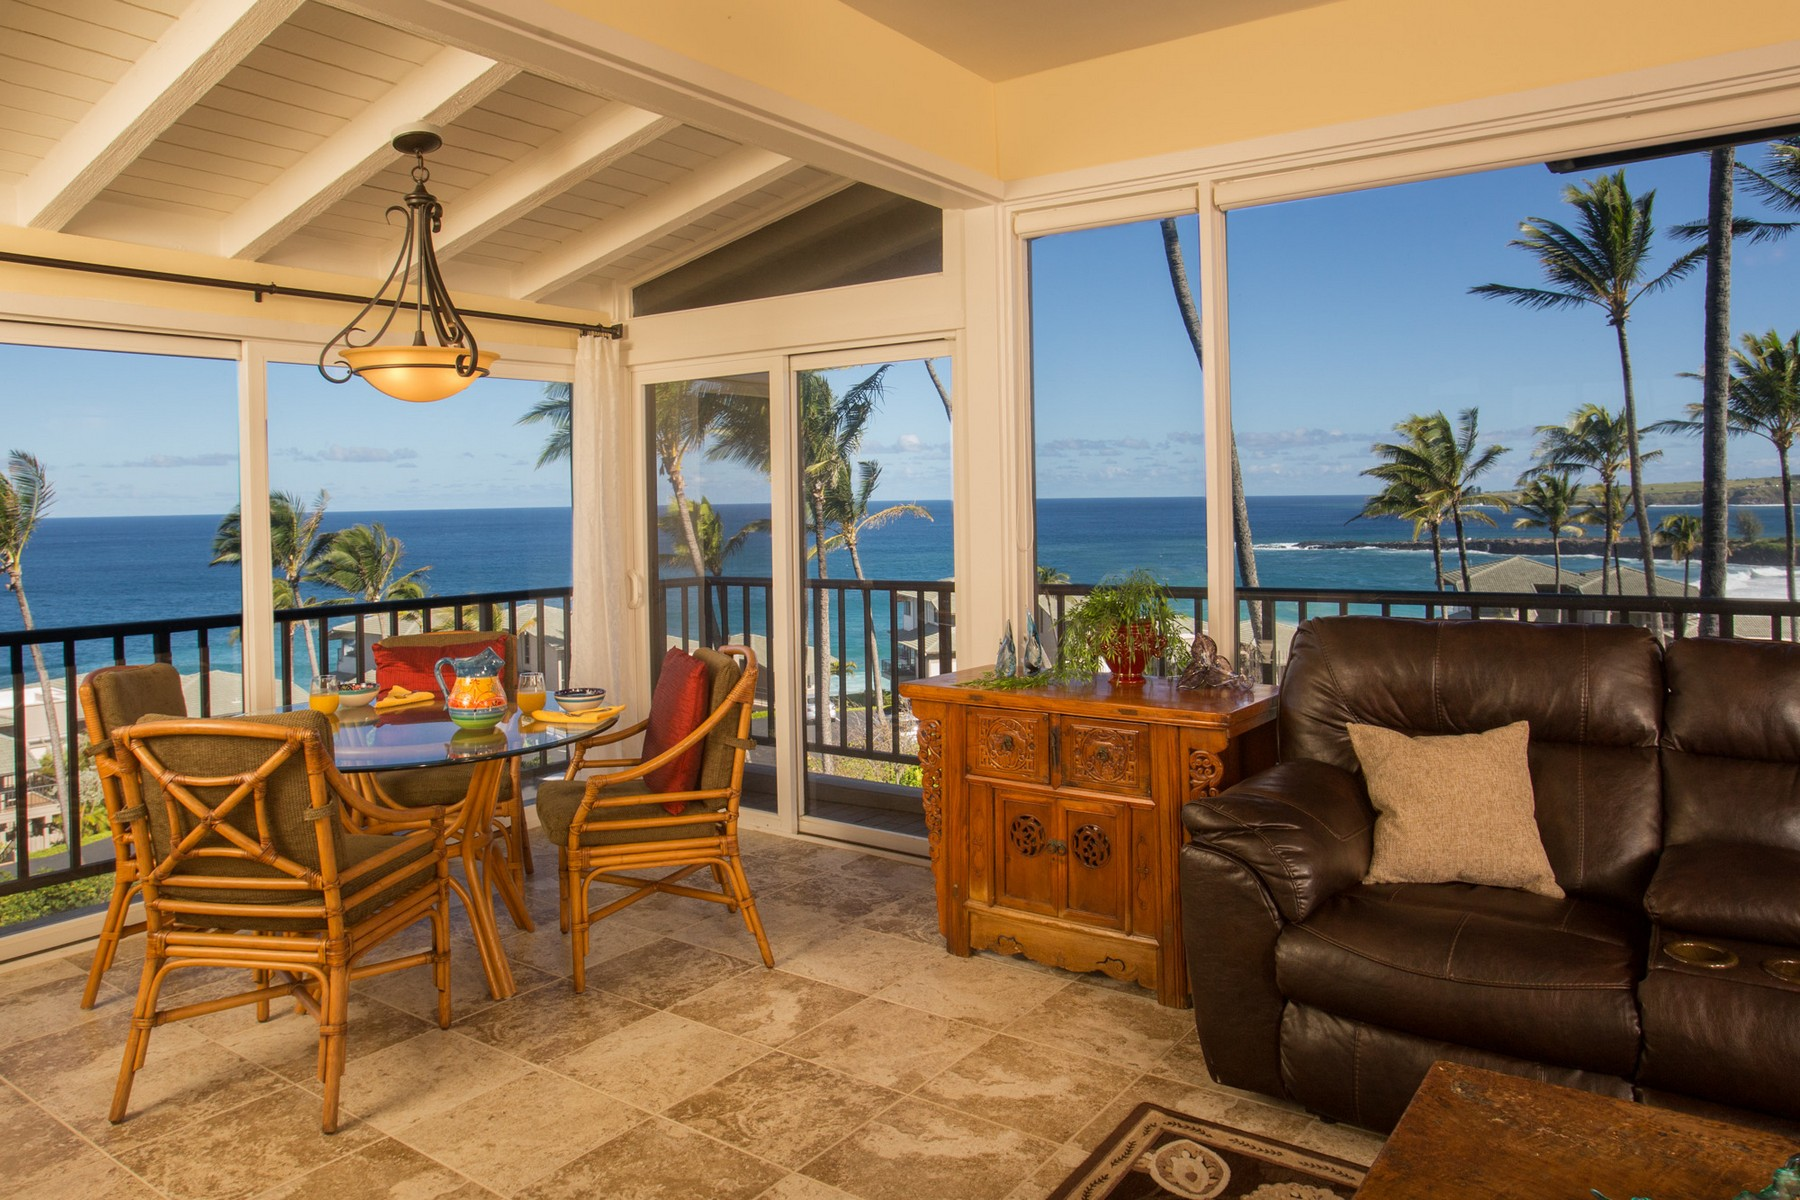 콘도미니엄 용 매매 에 Extraordinary Kapalua Townhome with Inspiring Views 500 Bay Drive, Kapalua Bay Villa 15B3 Kapalua, 하와이, 96761 미국